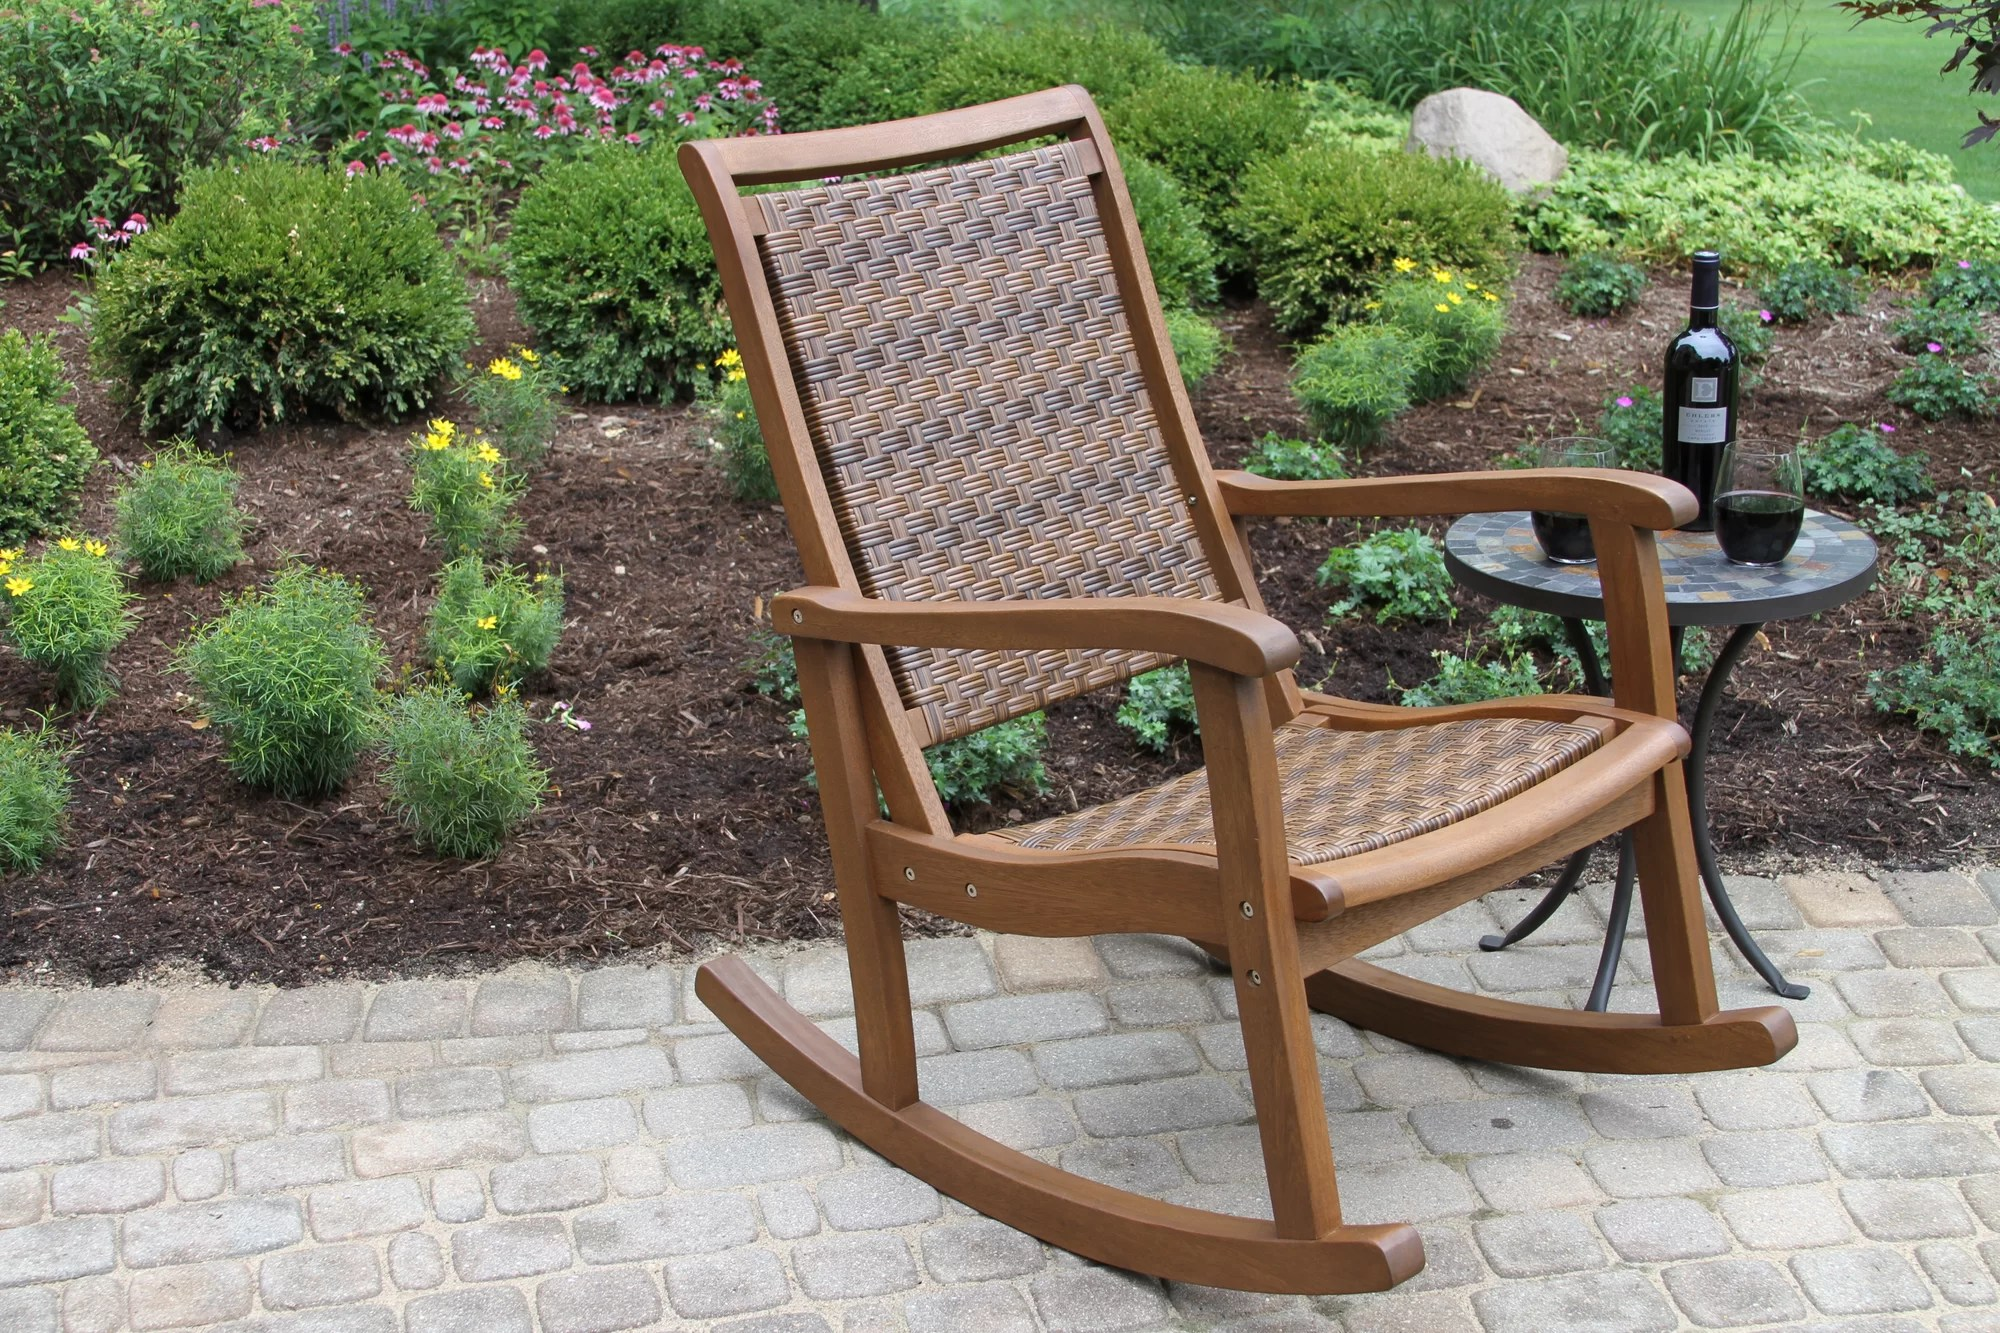 Resin Wicker Rocking Chair Outdoor Interiors Resin Wicker And Eucalyptus Rocker Chair